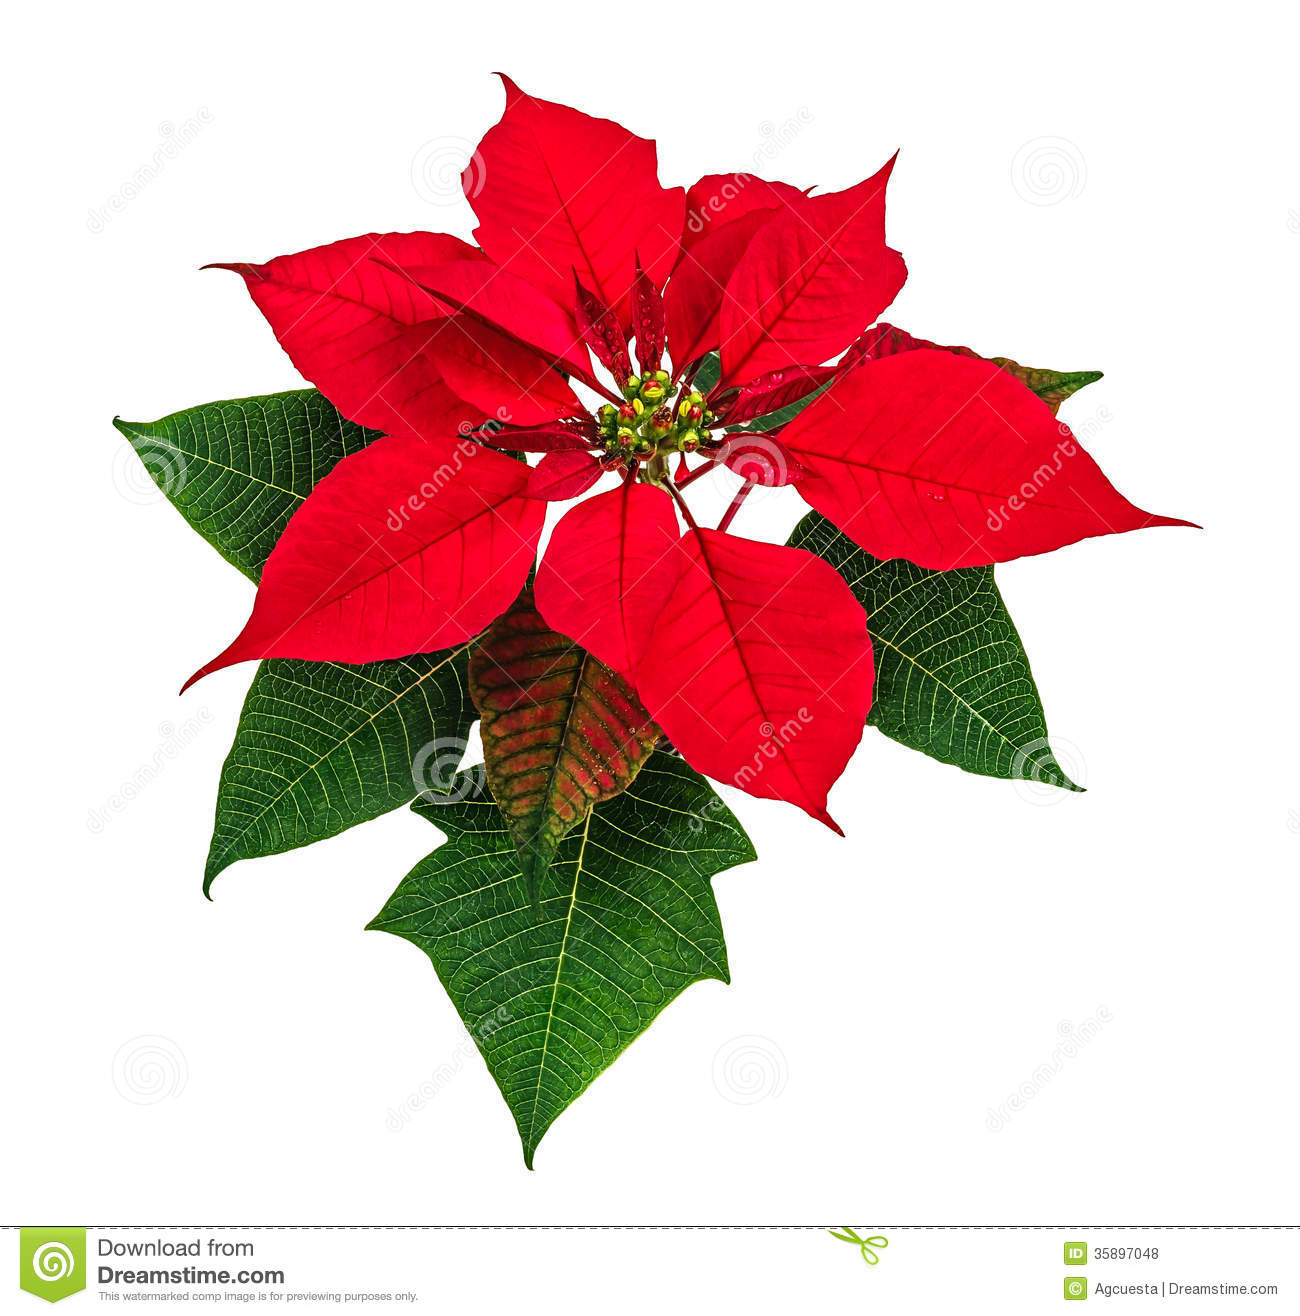 Poinsettia flower